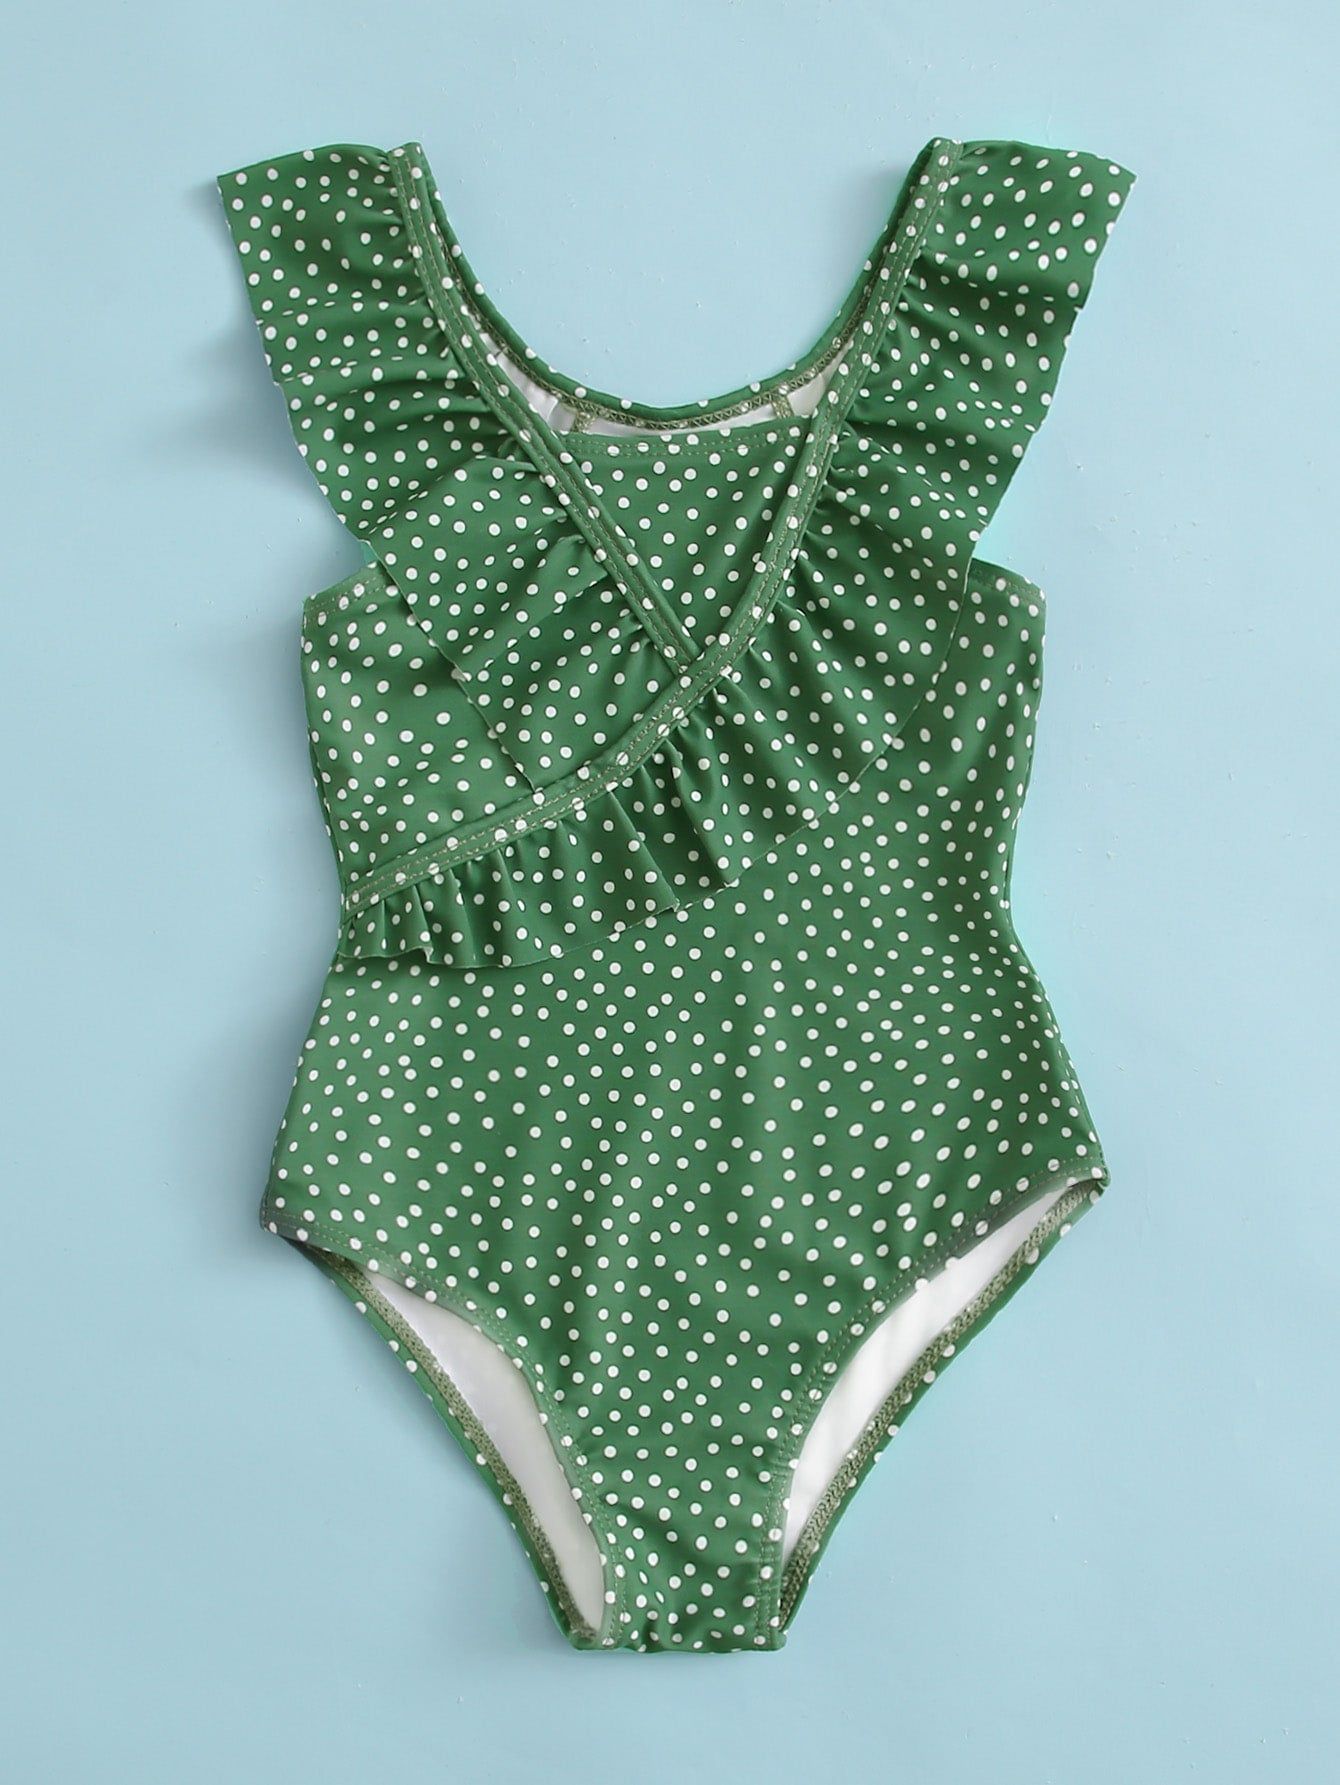 Toddler Girls Polka Dot Ruffle One Piece Swimsuit - FLJ CORPORATIONS